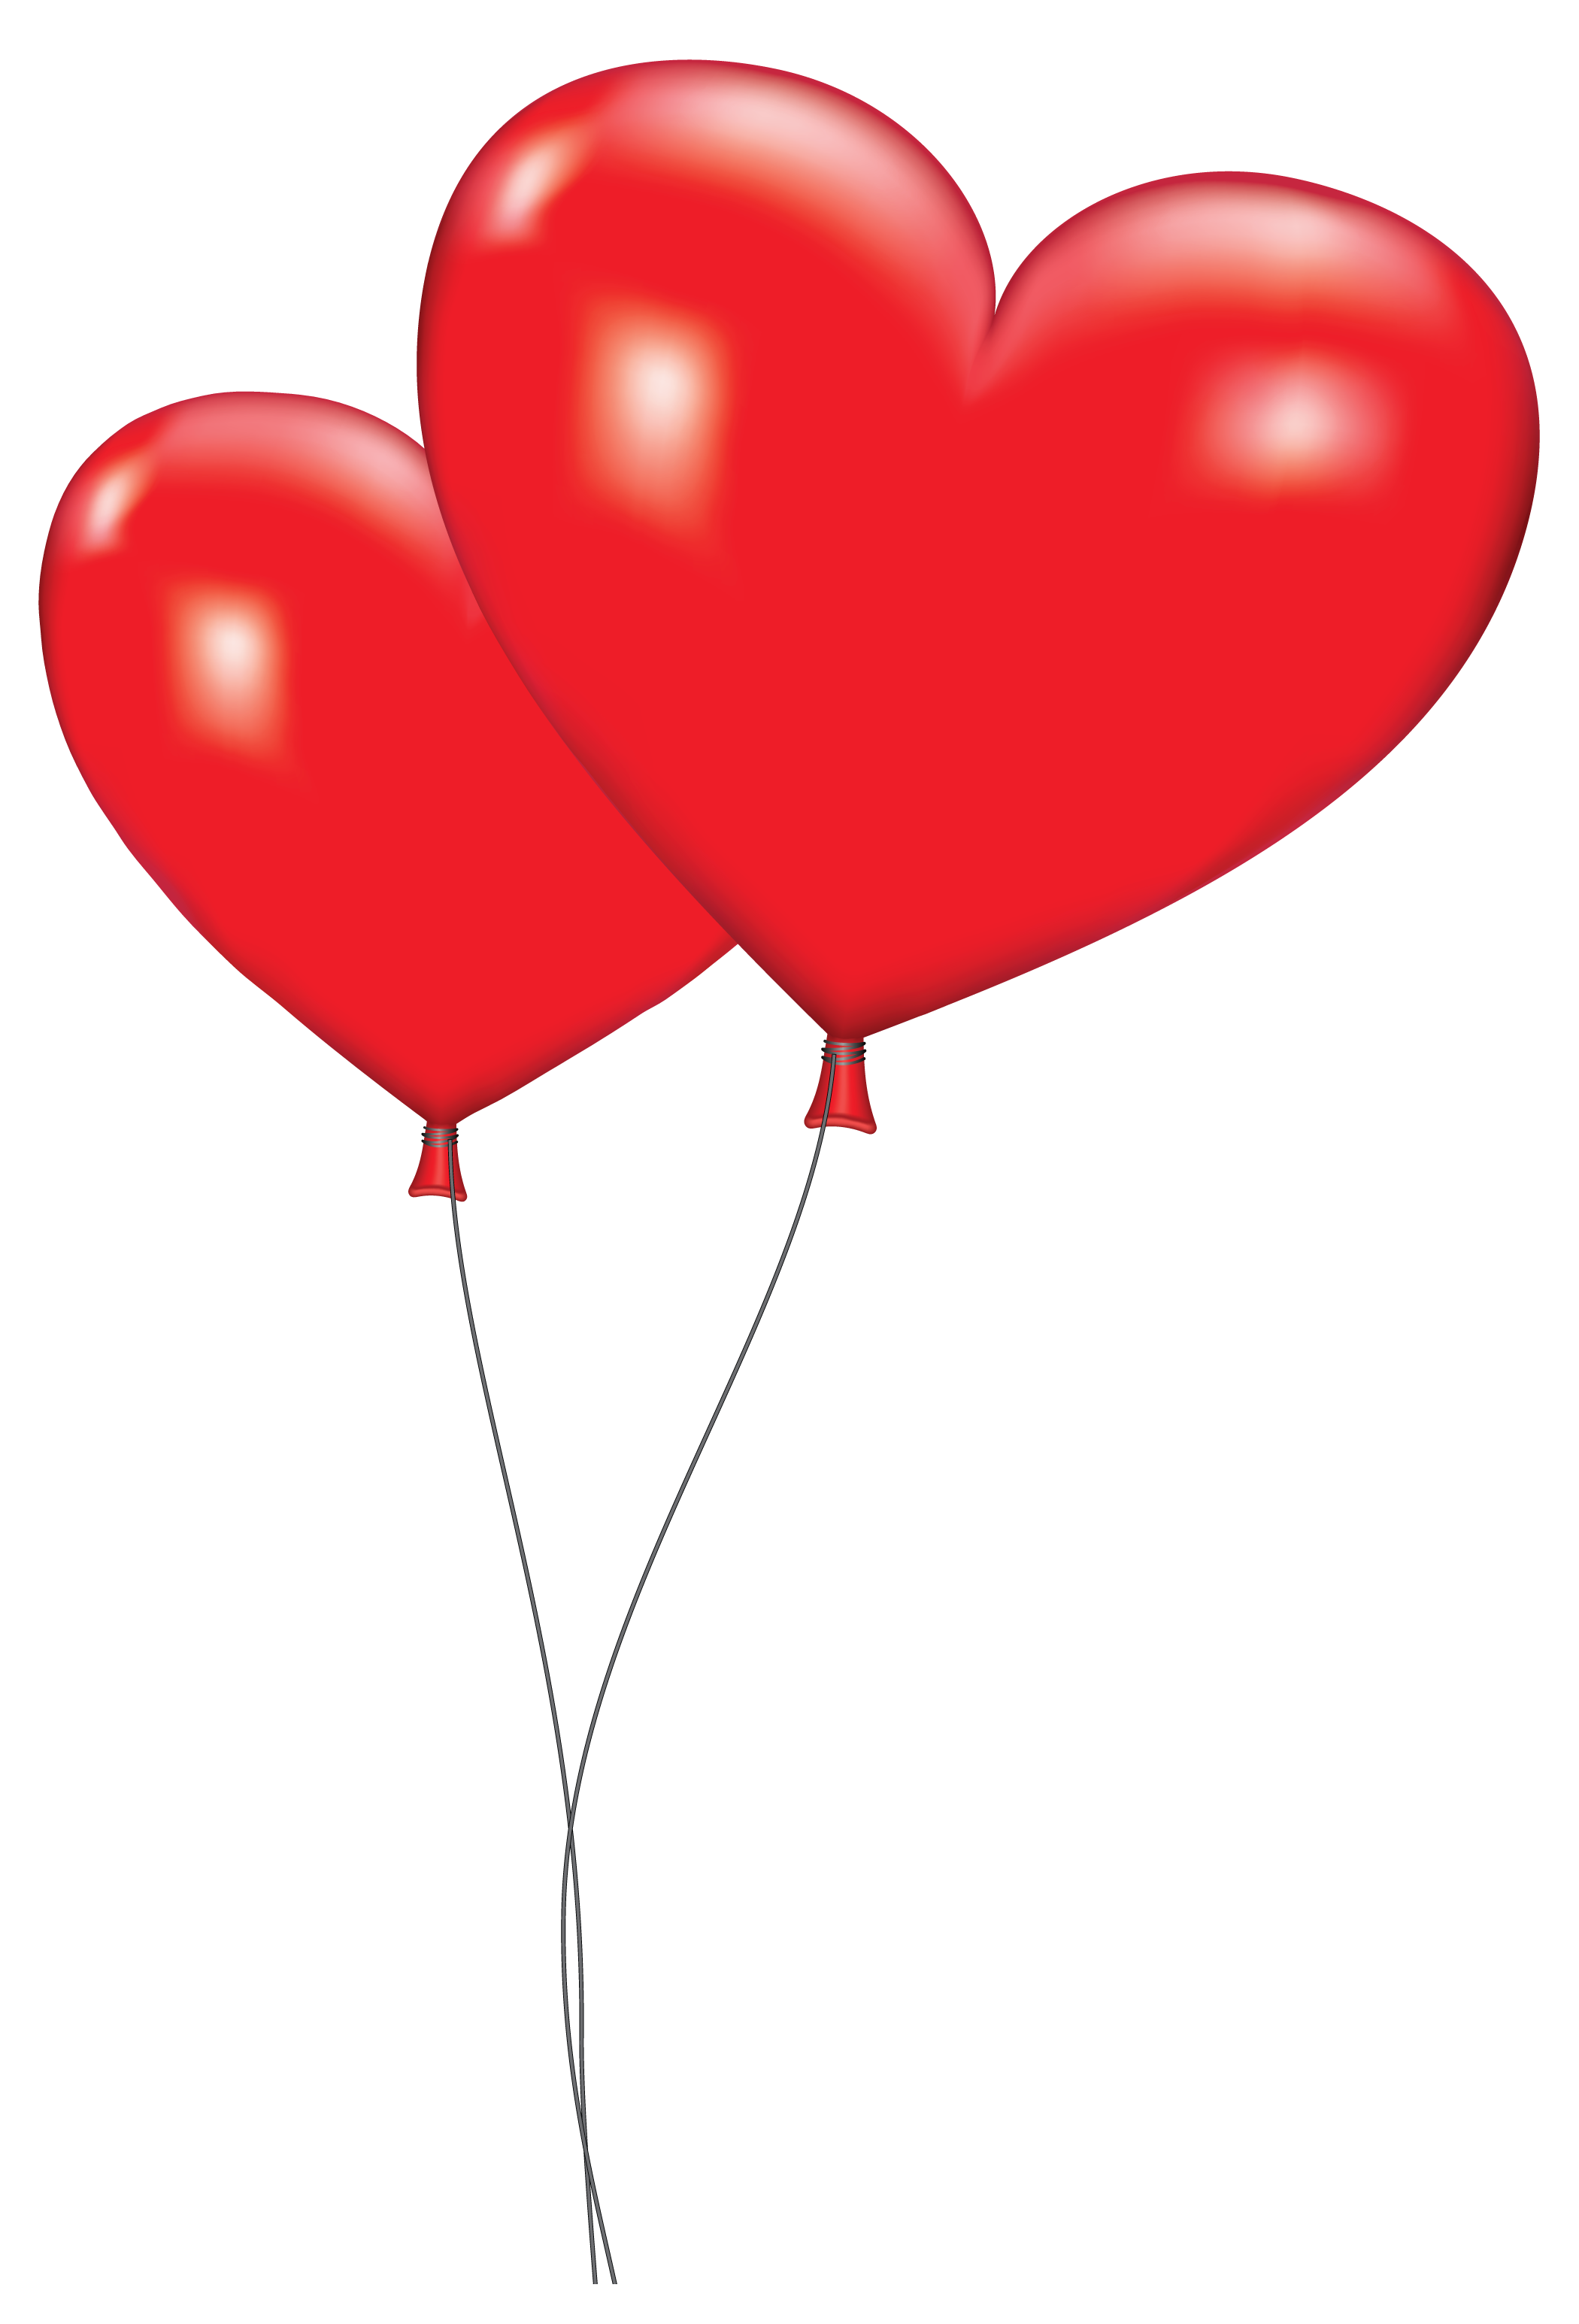 Heat clipart multiple heart. Orange balloon large red